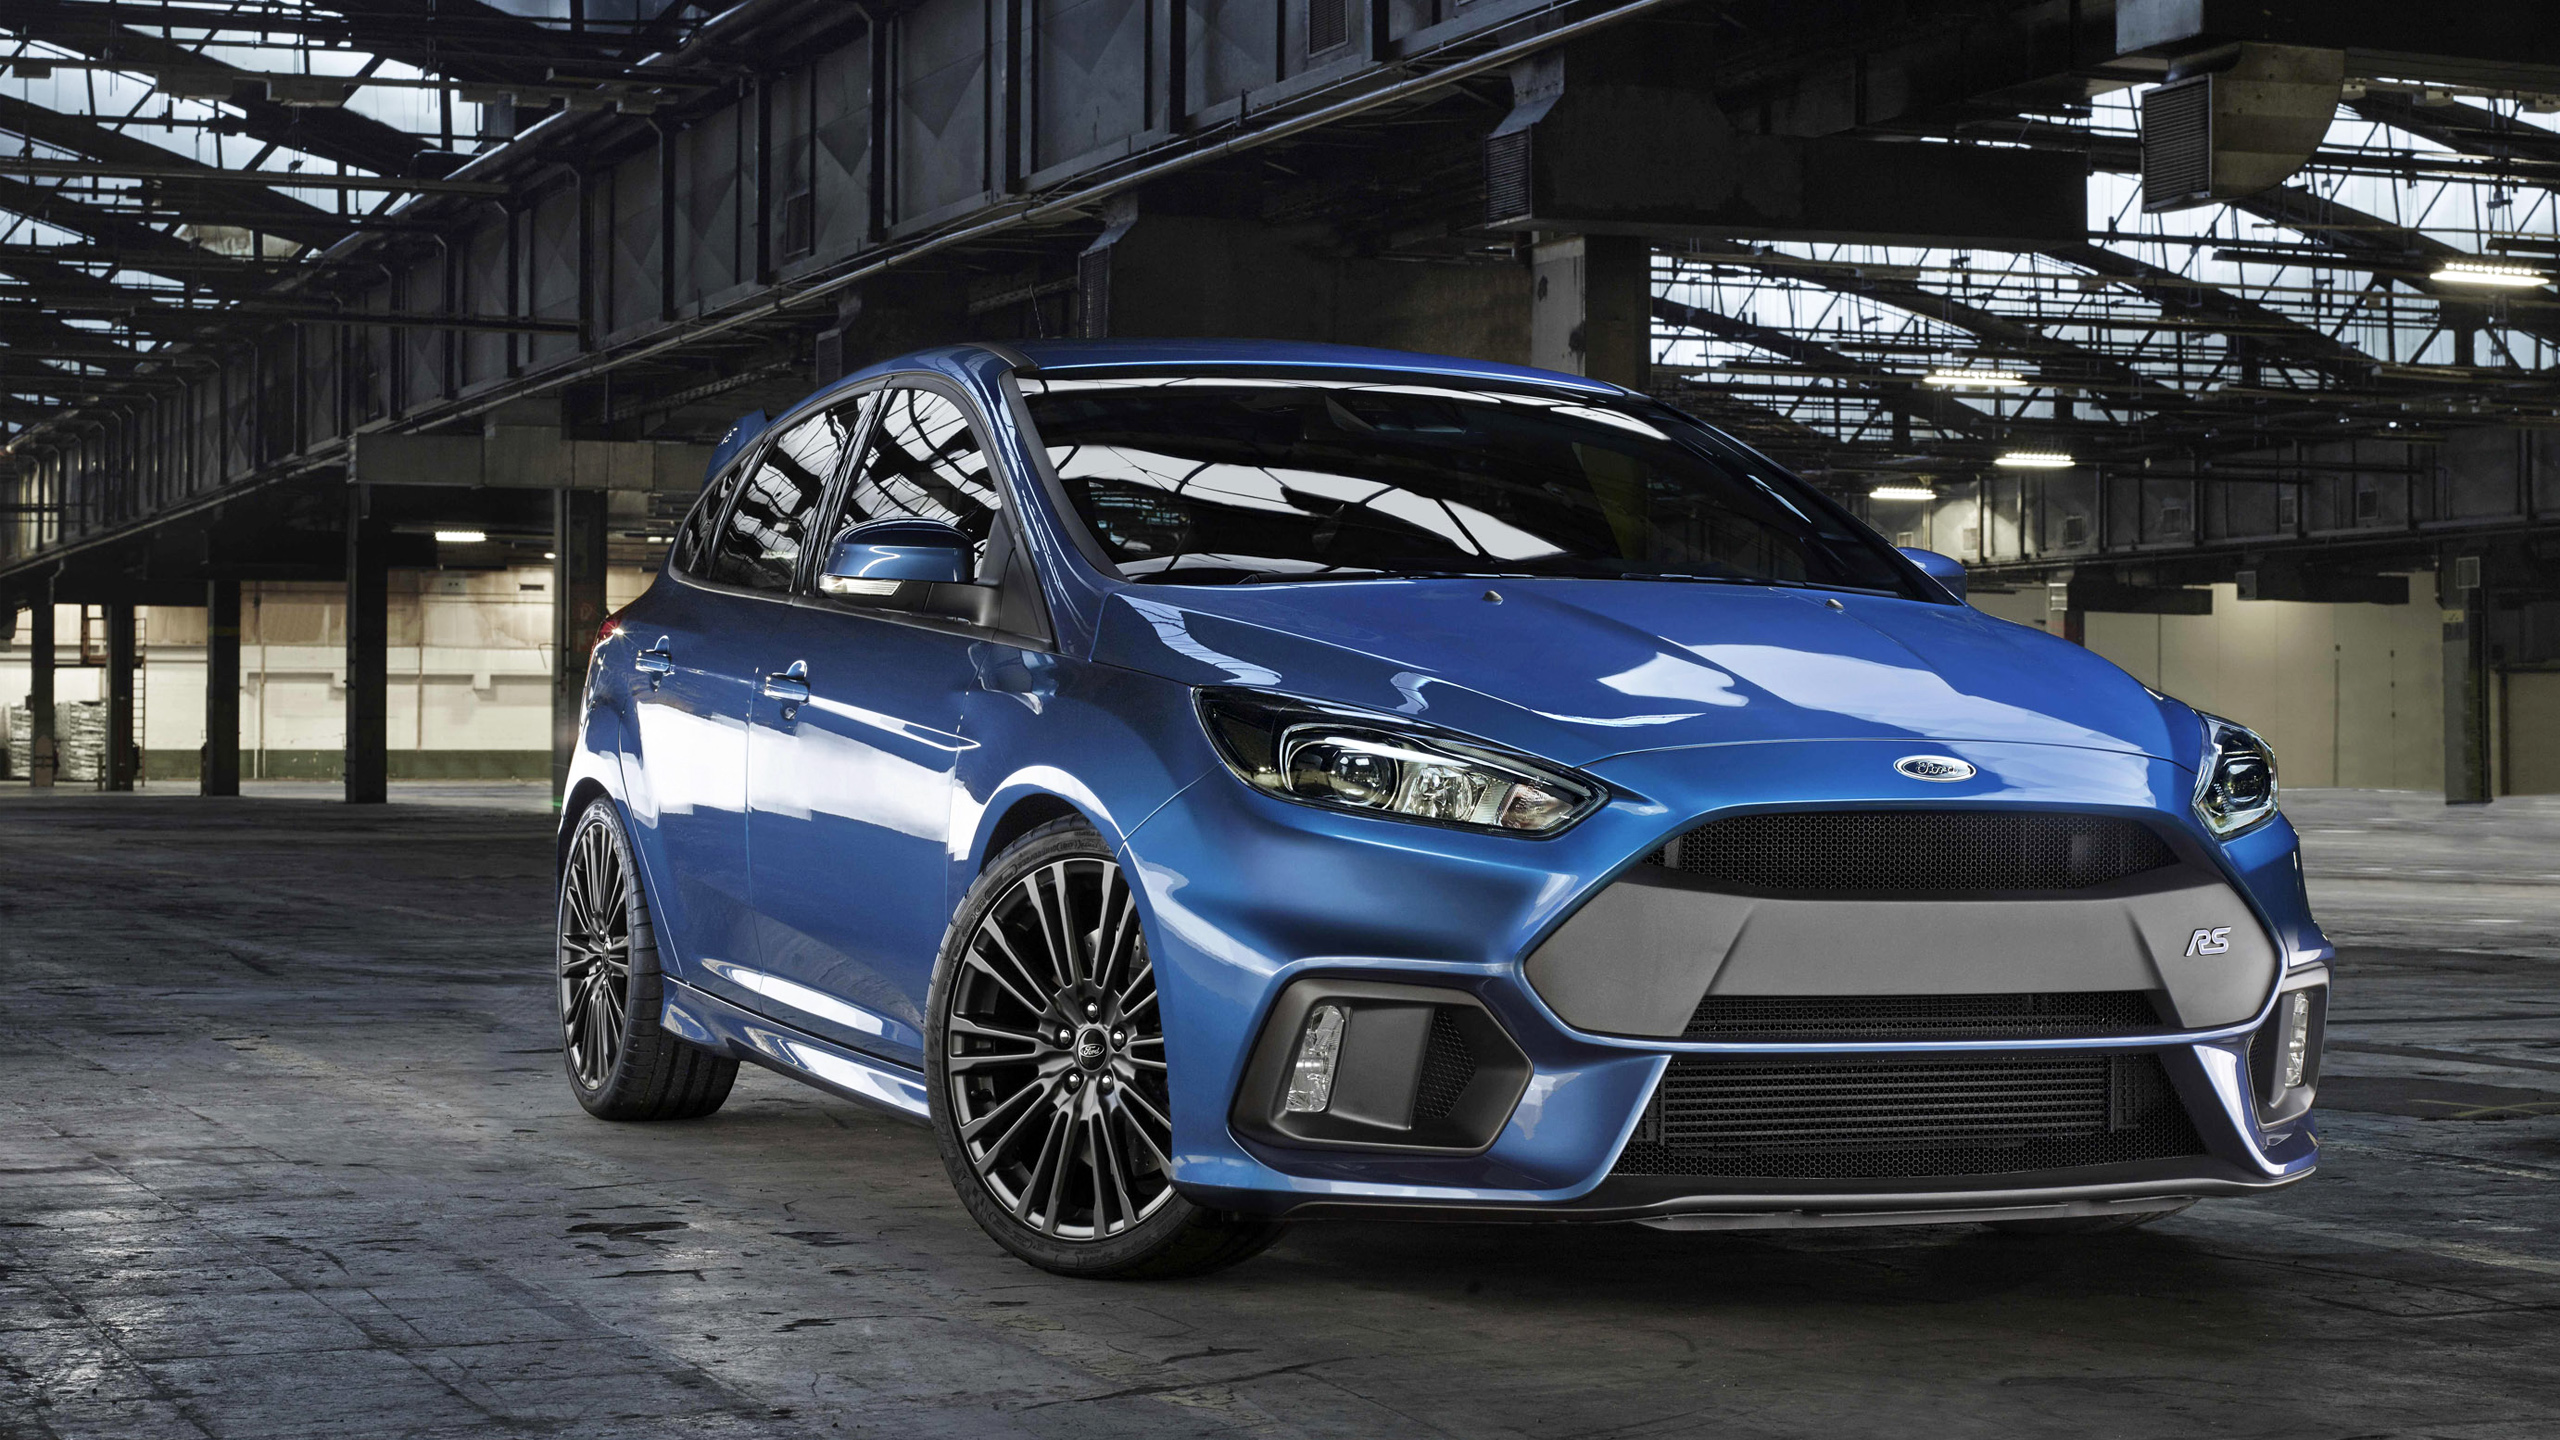 focus rs wallpaper  2016 Ford Focus RS Wallpaper | HD Car Wallpapers | ID #5096